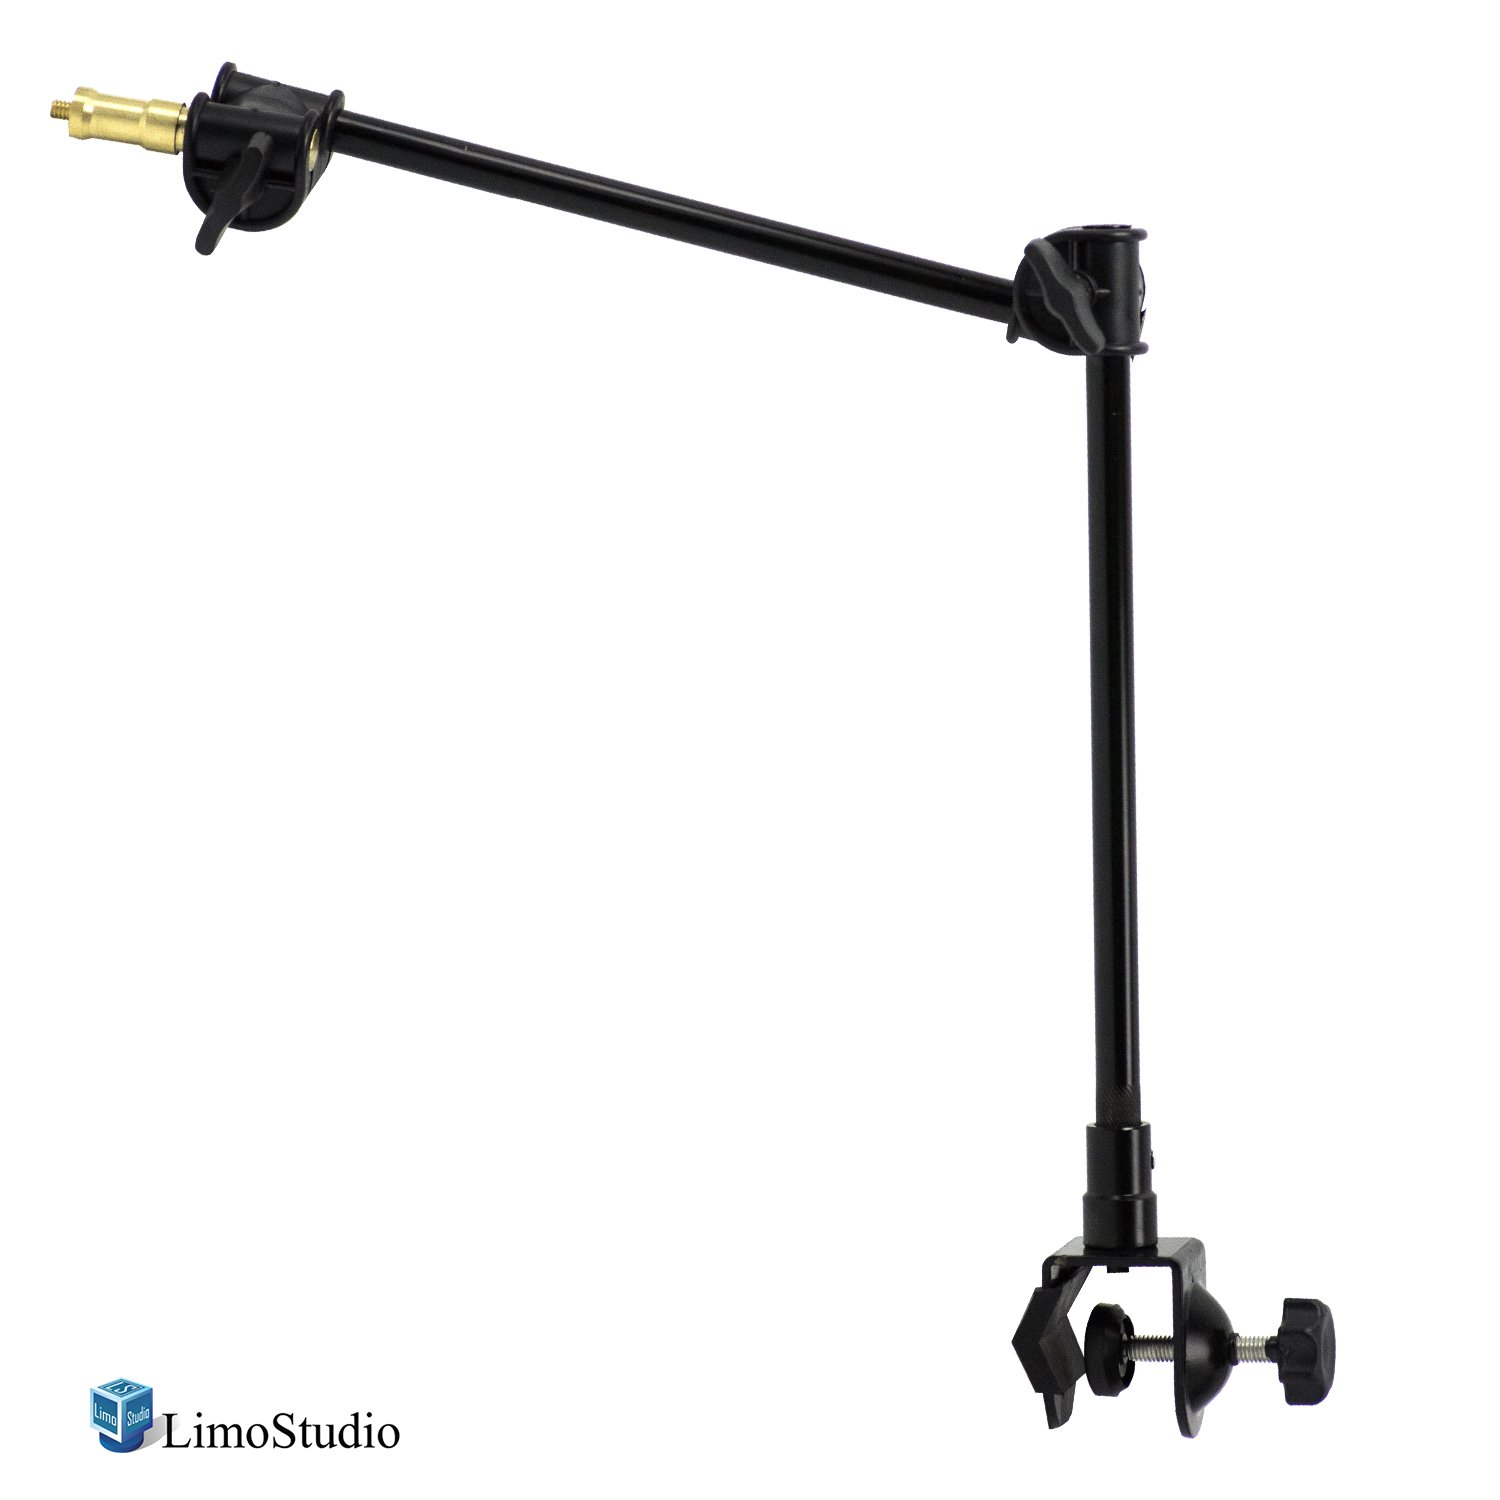 LimoStudio 11 to 24 inch, Articulating 360 Degree Adjustable Sliding & Rotating Magic Arm with Table Mounting Clamp and 1/4 inch Threaded Equipment Mounting Stud for Photo and Video Studio, AGG2495